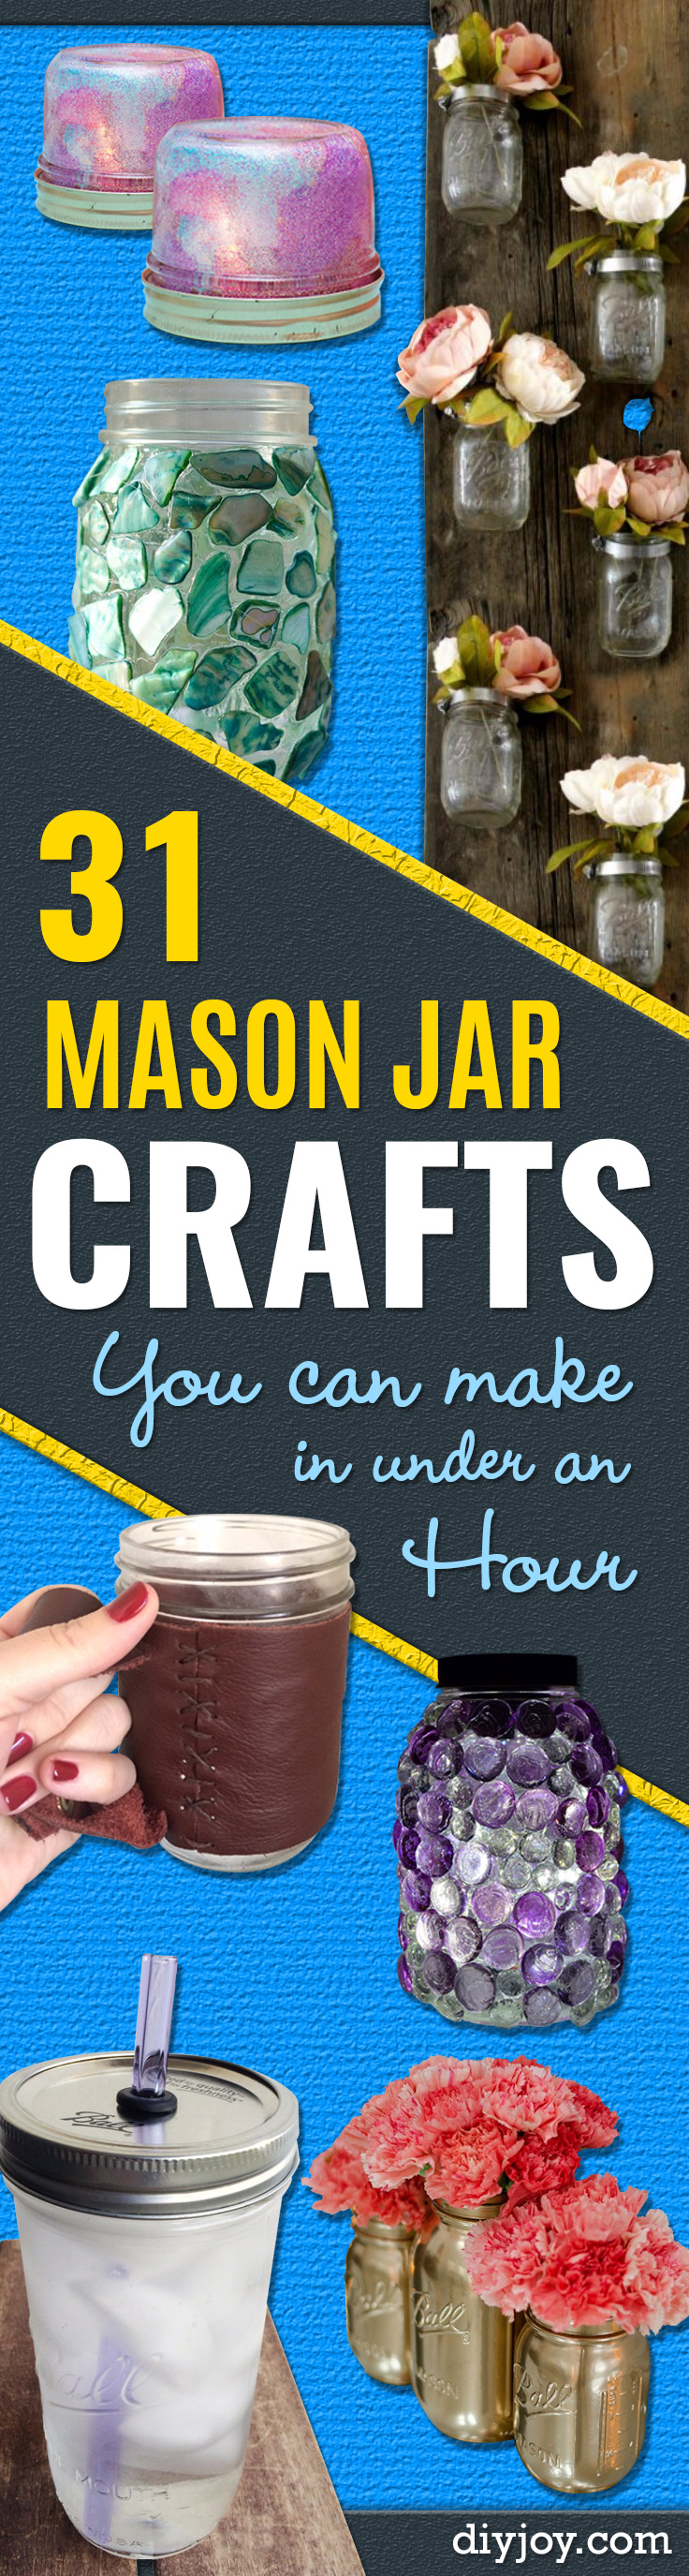 Easy Mason Jar Crafts You Can Make In Under an Hour - Quick Mason Jar DIY Projects for Christmas Gifts that Make Cool Home Decor and Awesome DIY Gifts - Best Creative Ideas for Mason Jars with Step By Step Tutorials and Instructions - For Teens, For Home, For Gifts, For Kids, For Summer, For Fall #masonjarcrafts #easycrafts